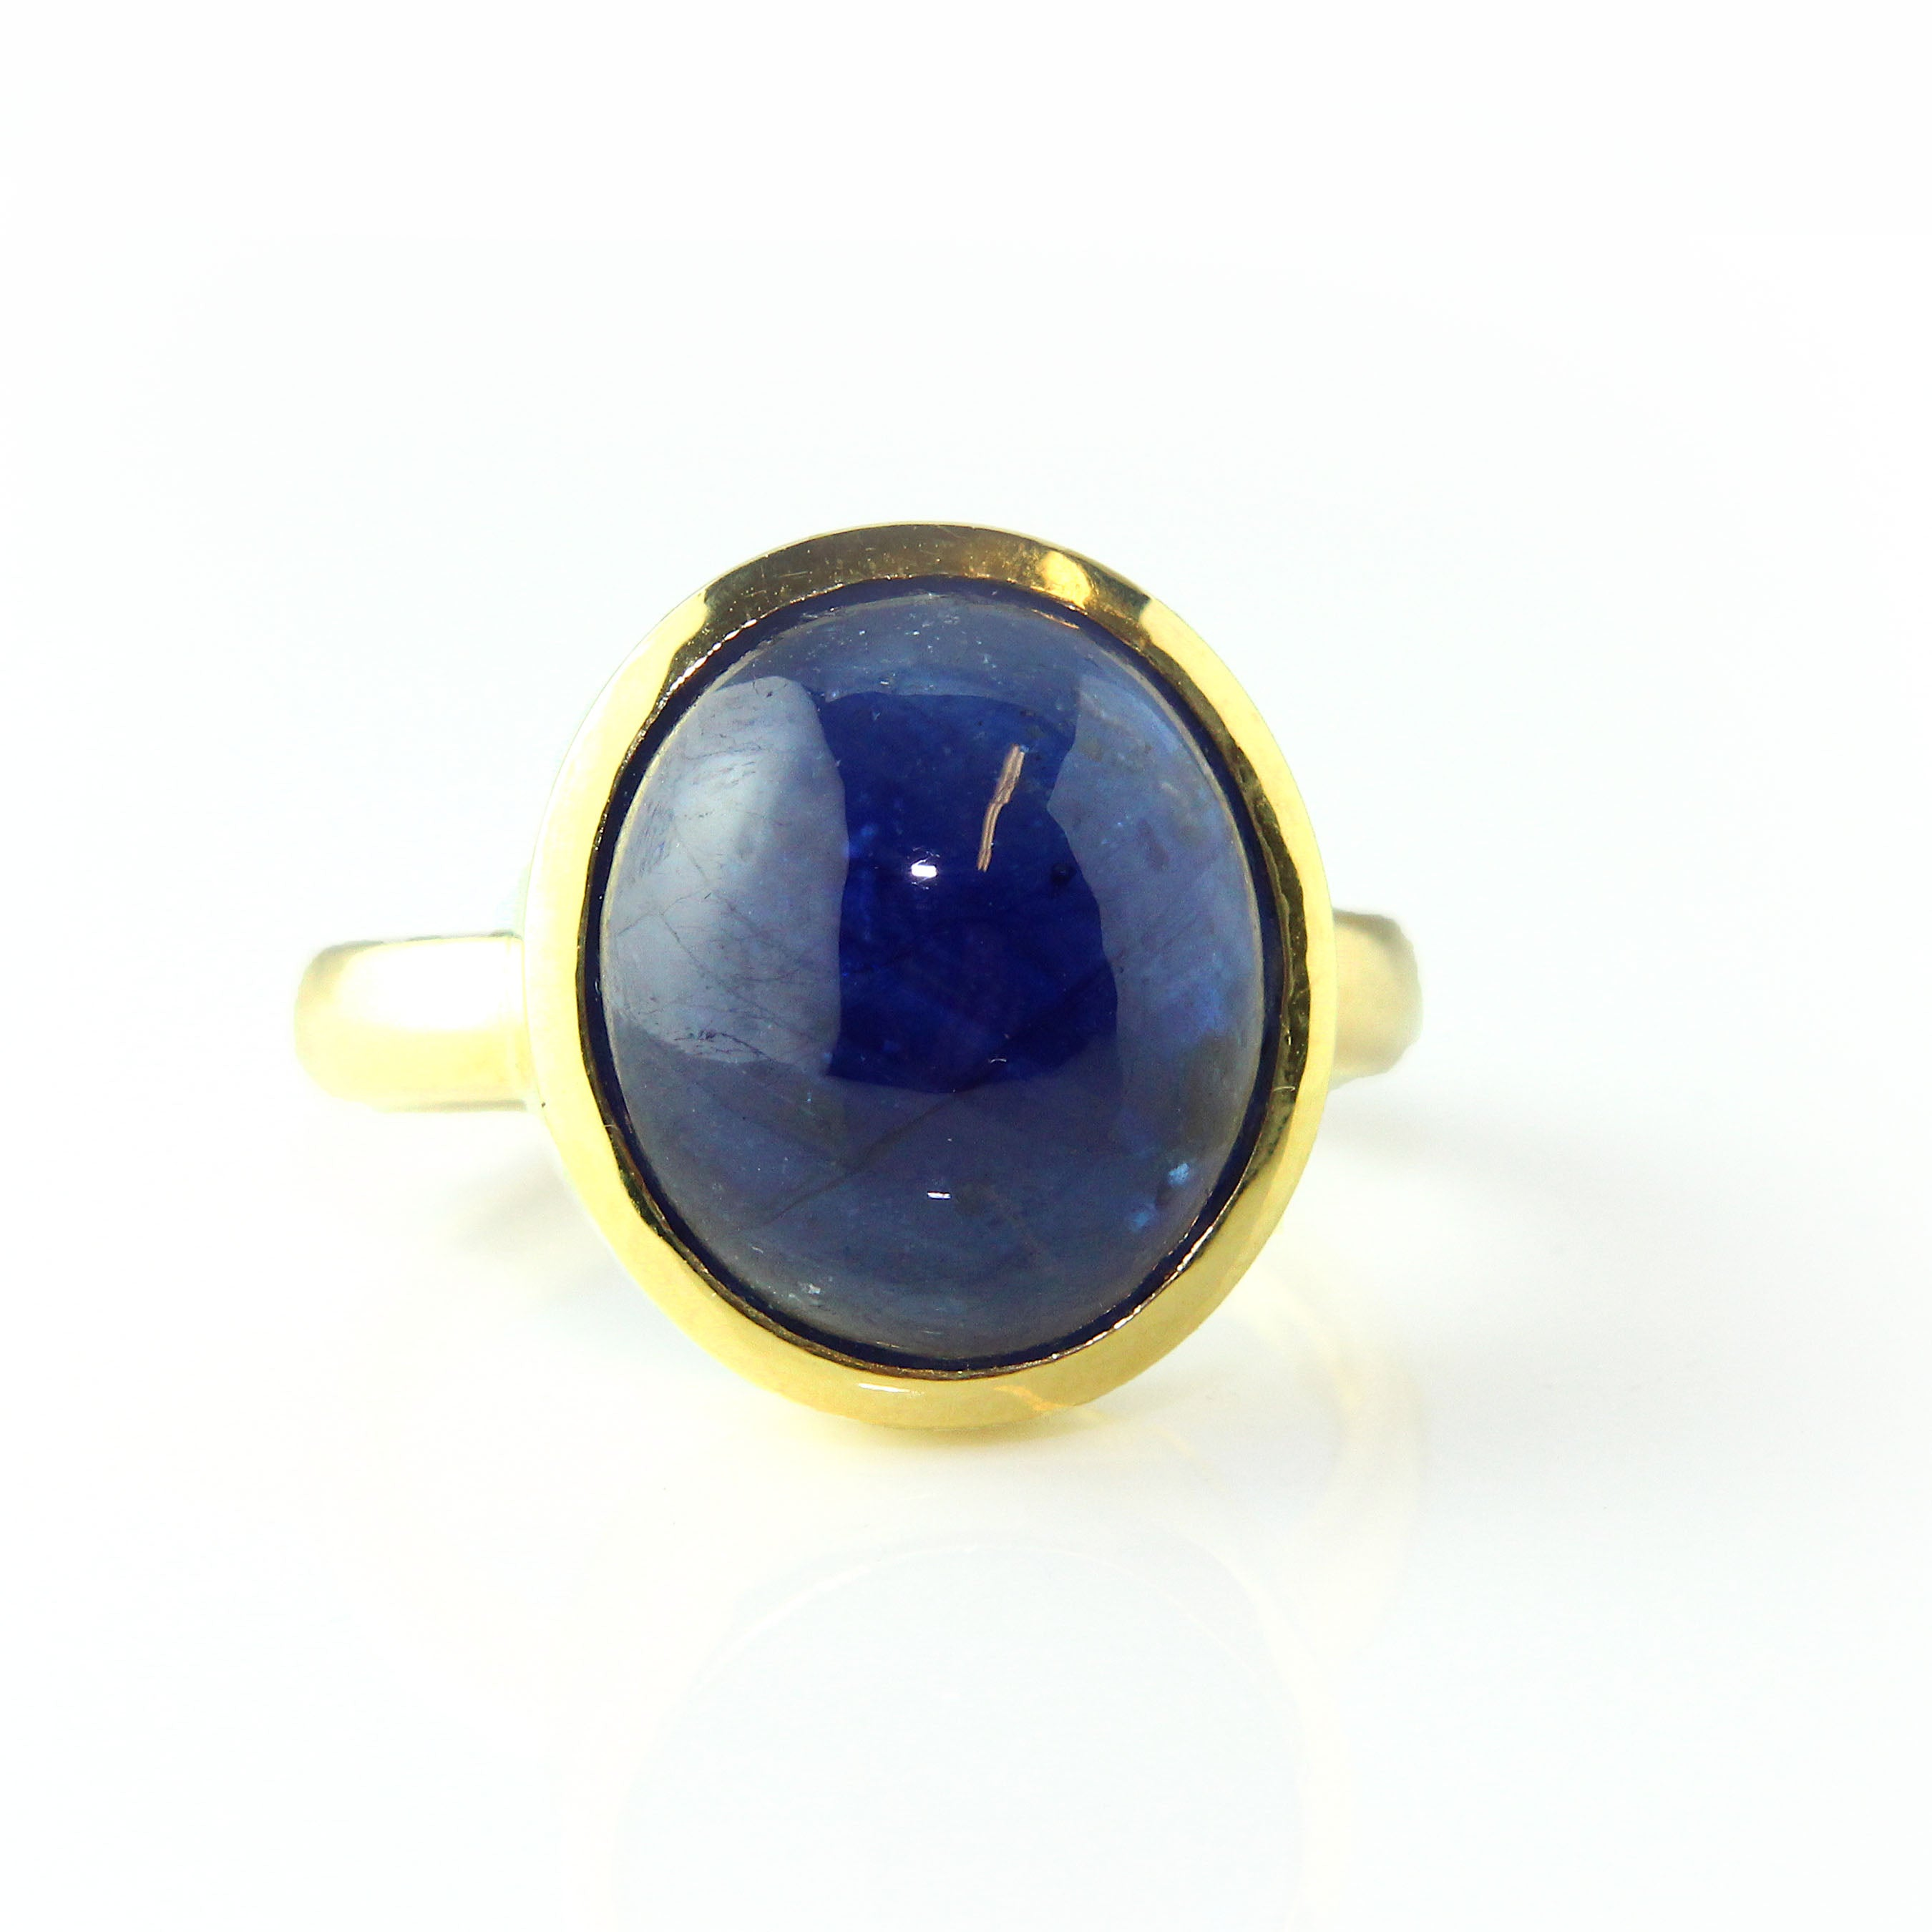 product ring gold blue engagement ruth sapphires sapphire the editor false tomlinson scale with and crop diamonds jewellery upscale subsampling shop